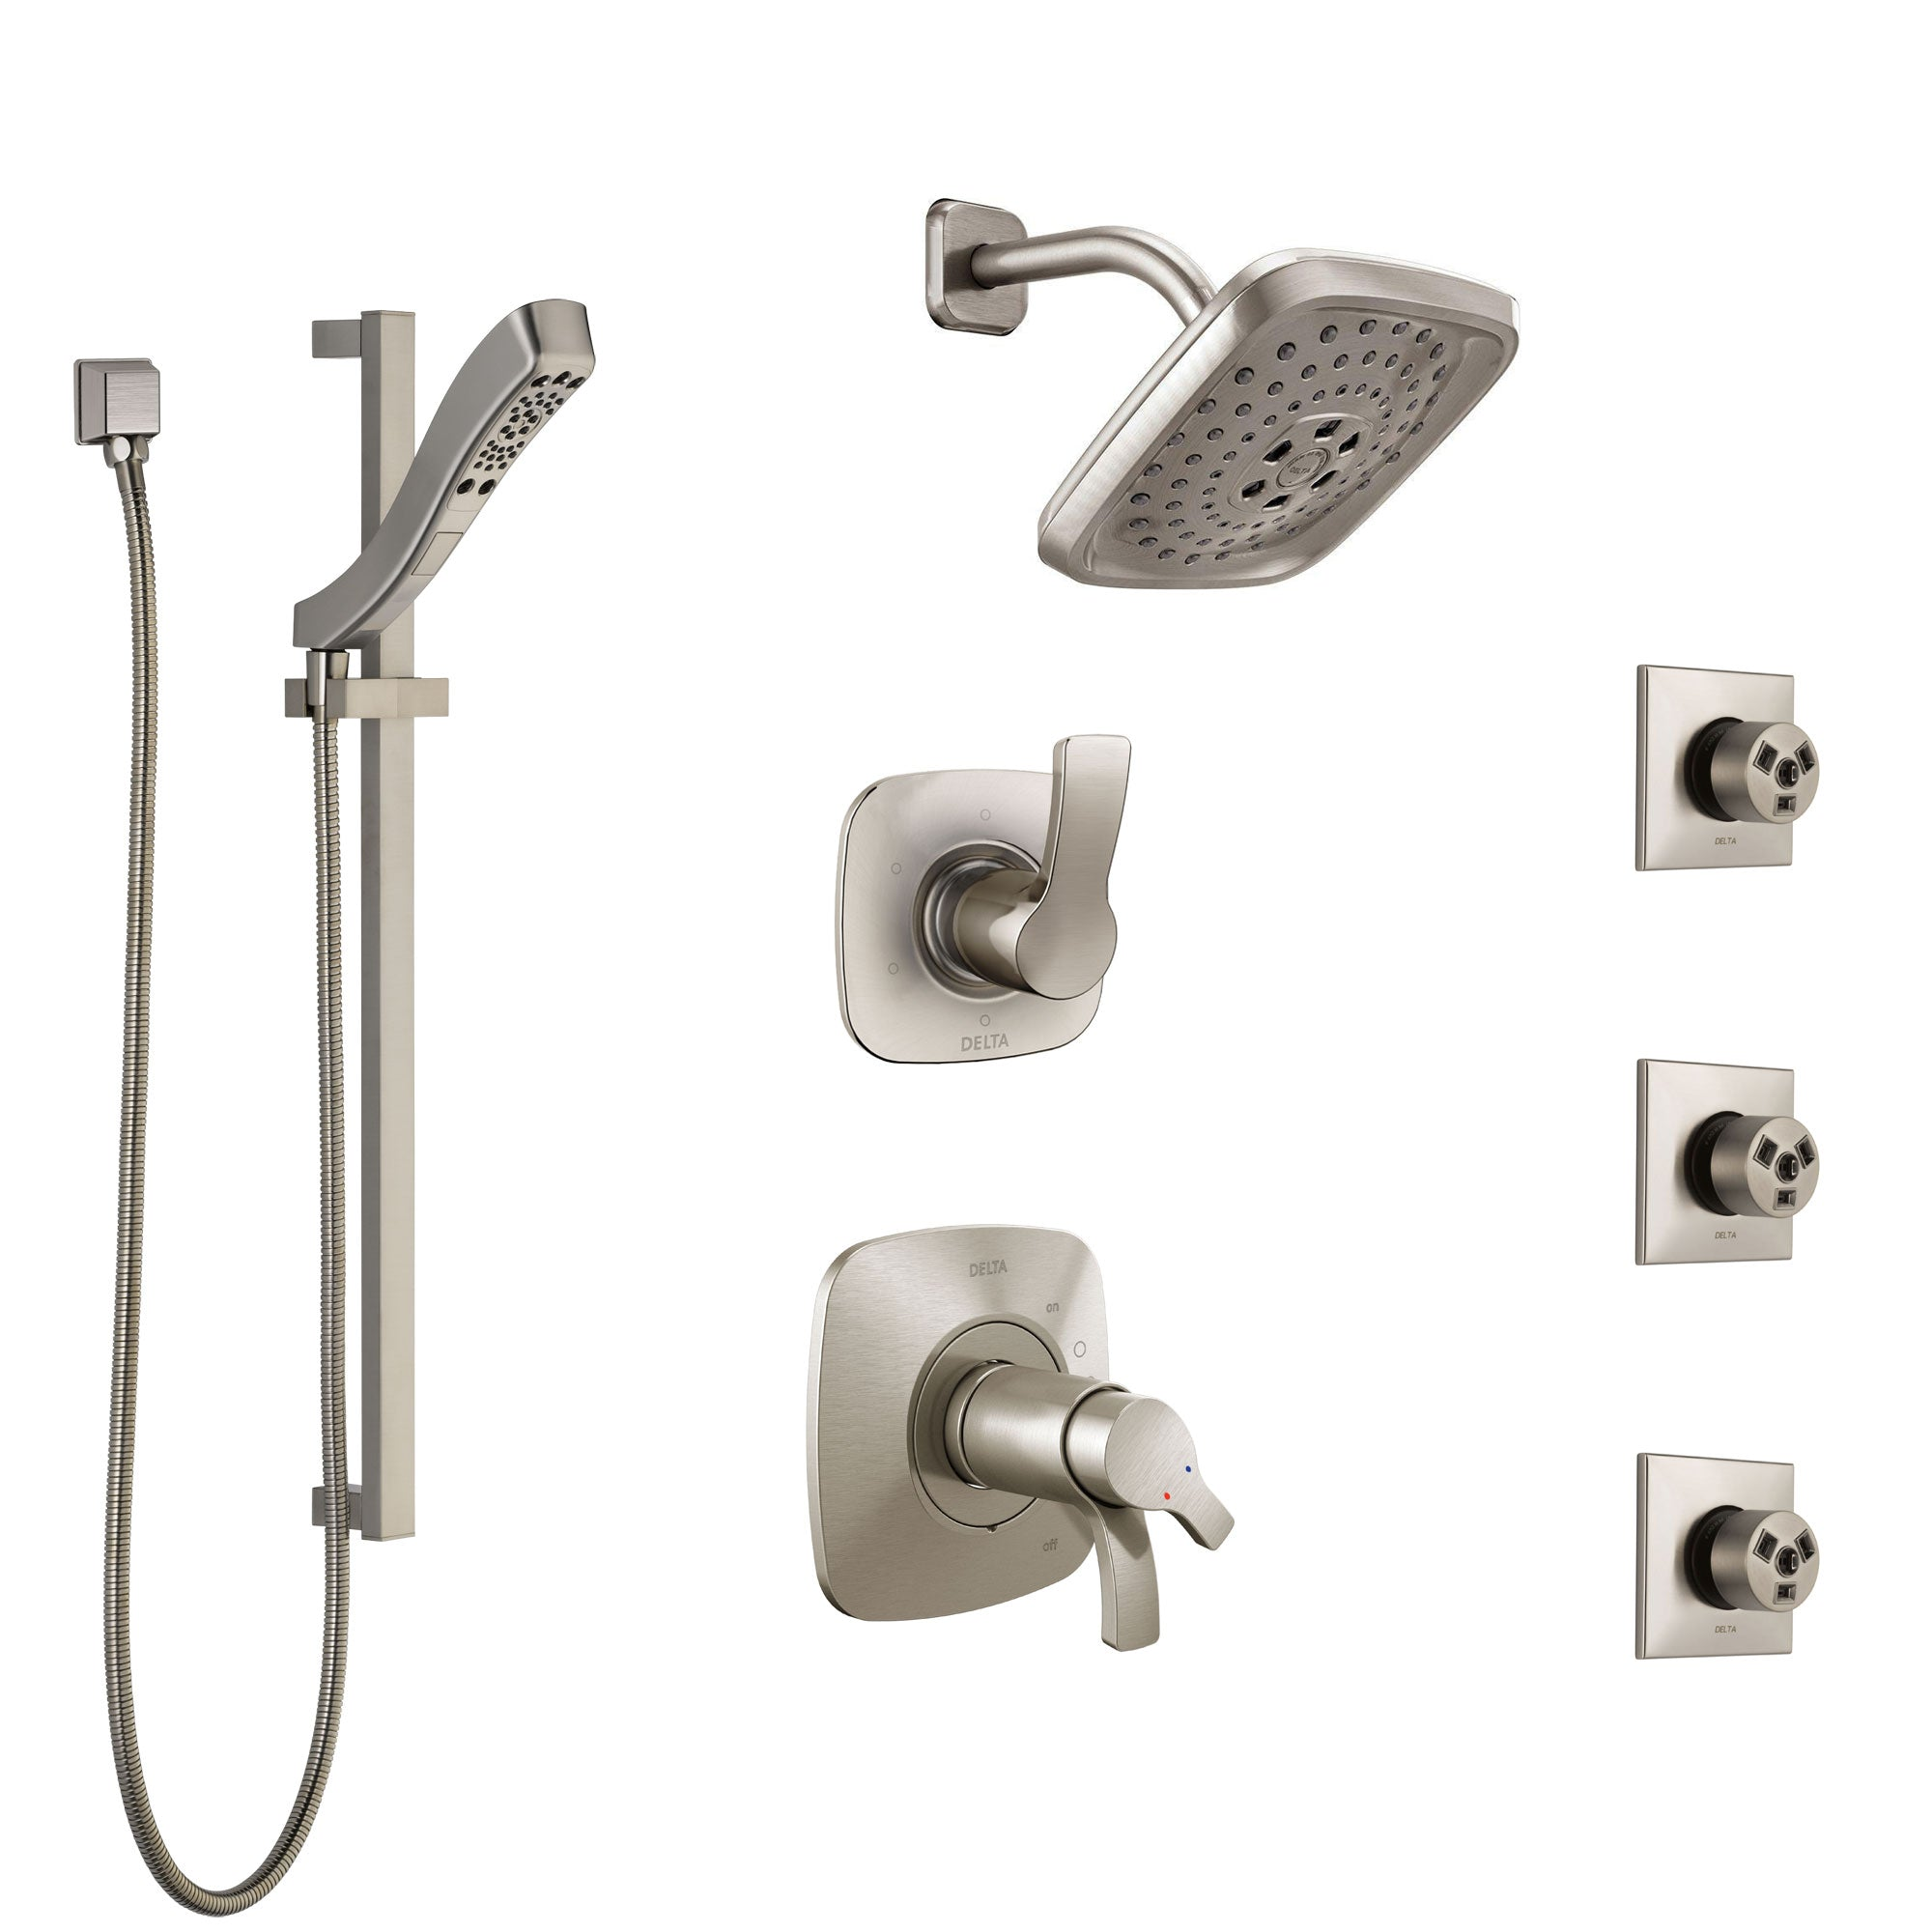 Delta Tesla Dual Thermostatic Control Stainless Steel Finish Shower System, Diverter, Showerhead, 3 Body Sprays, and Hand Shower SS17T2521SS4